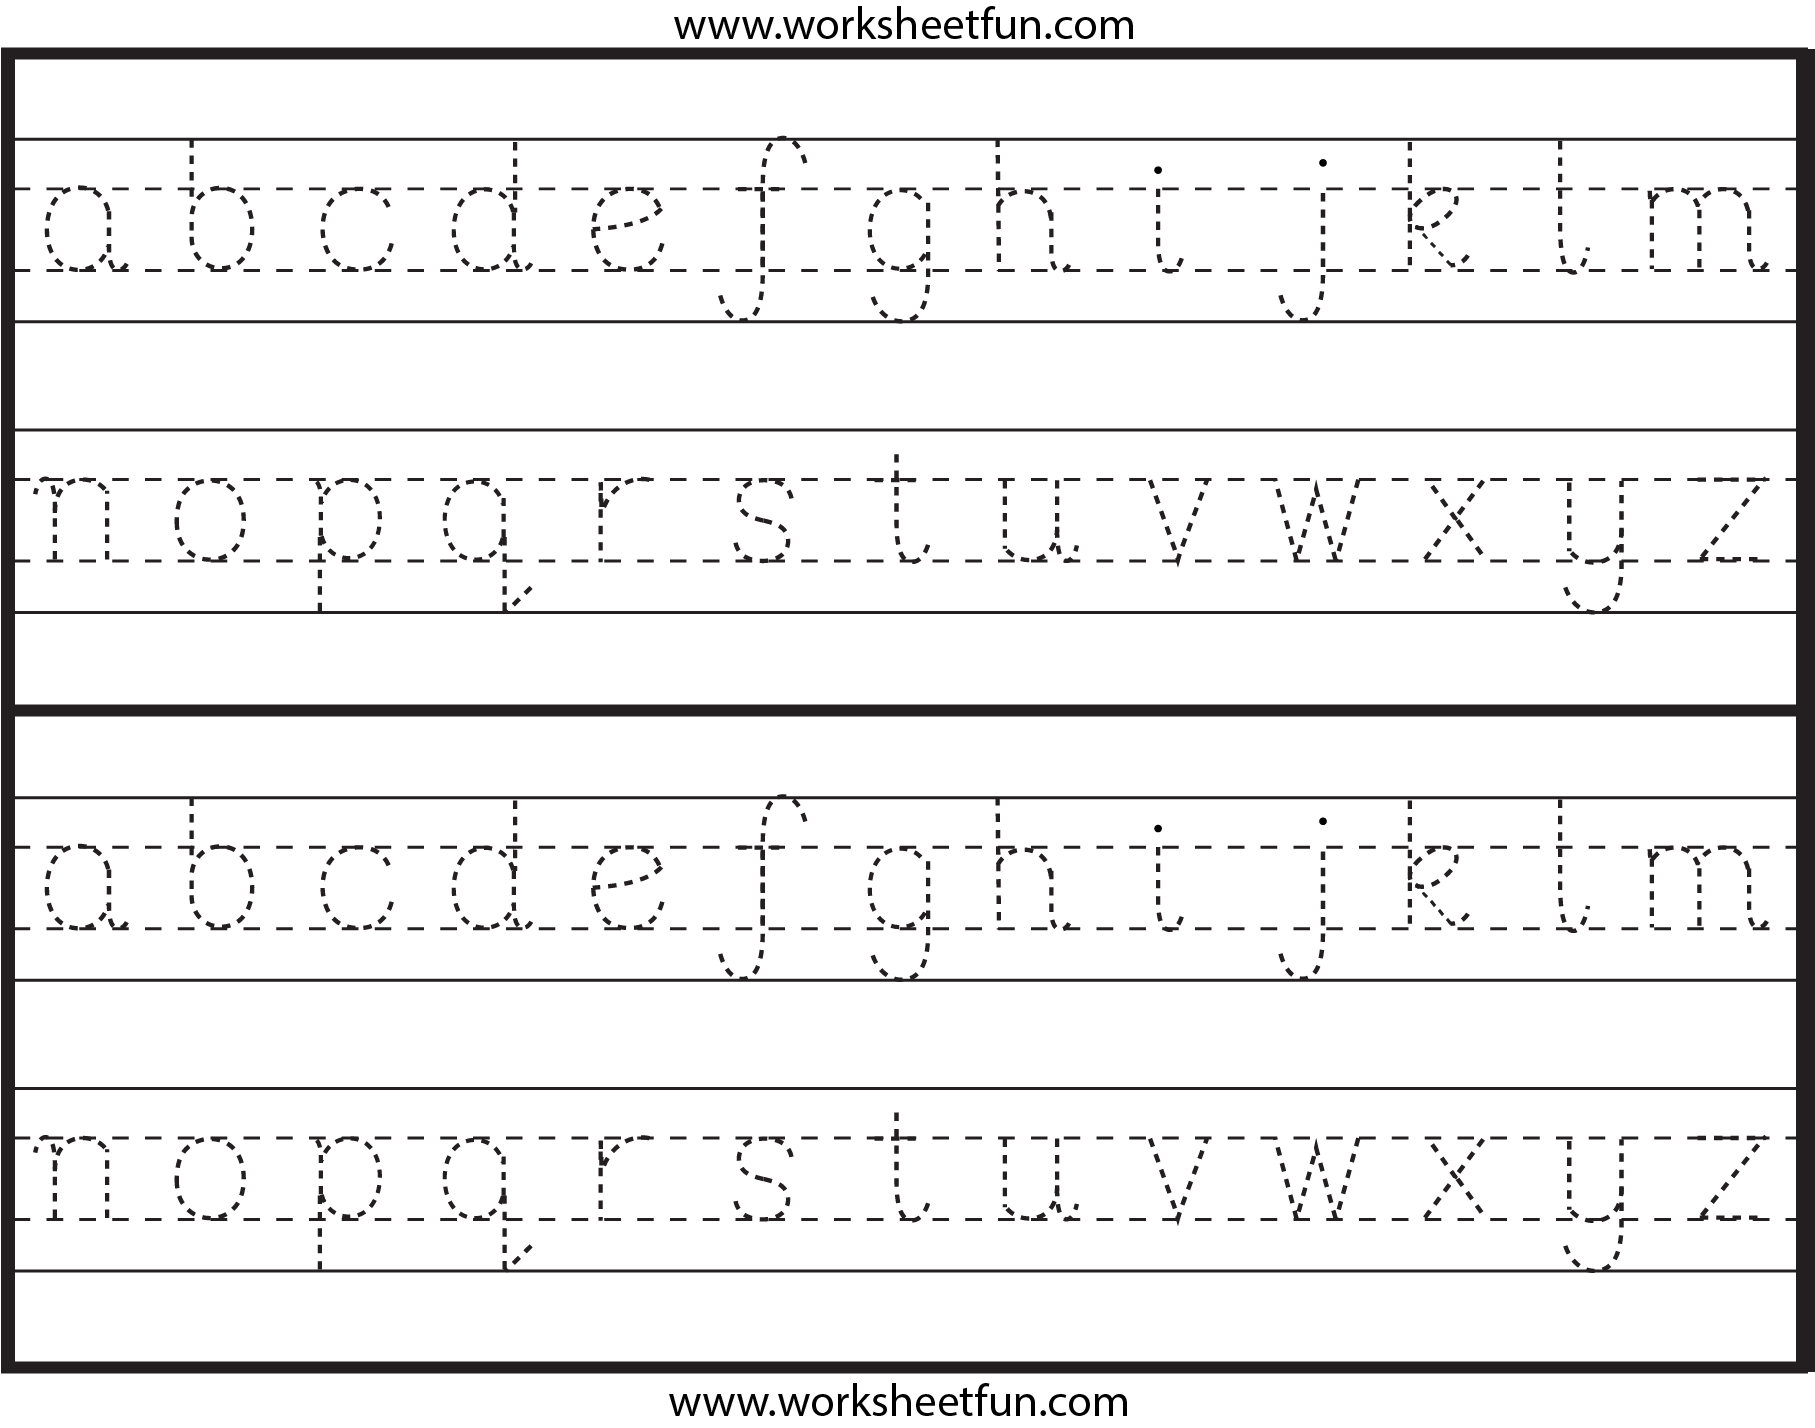 Worksheet Printable Alphabet Worksheets A-z free printable worksheets alphabet letters intrepidpath 8 best images of letter tracing worksheets